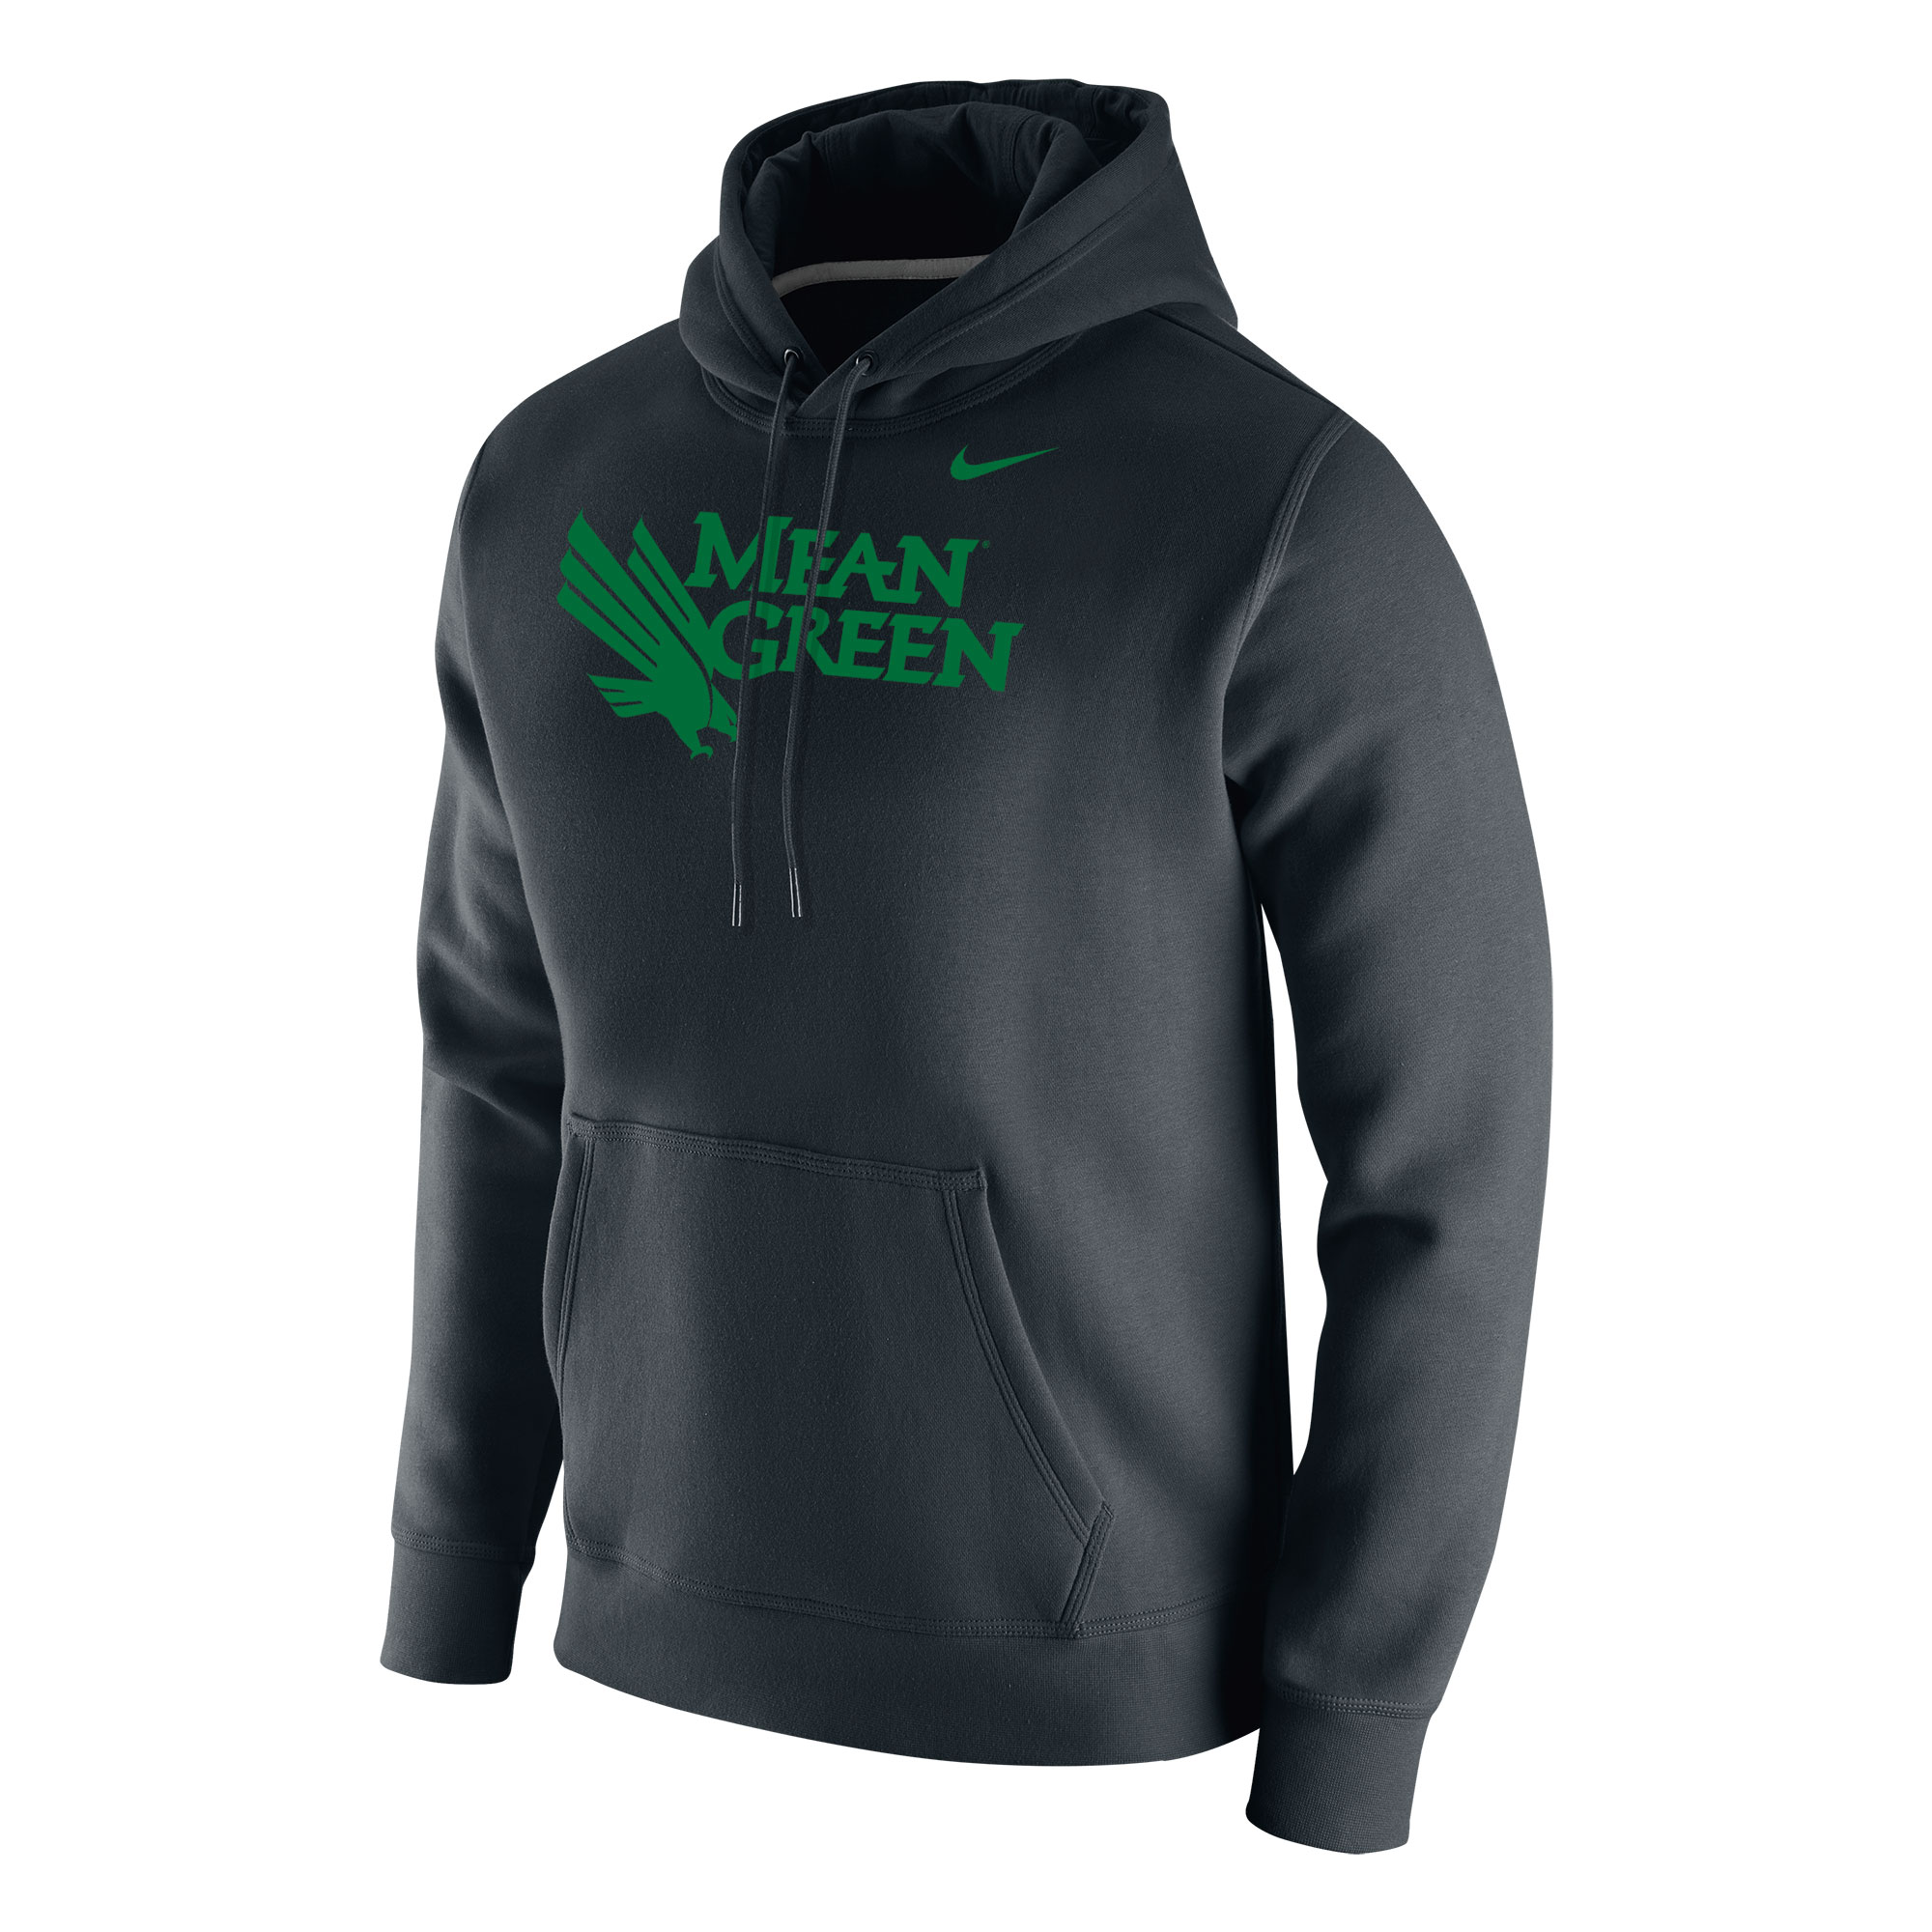 University of North Texas Nike Core Cotton Fleece Hoodie Sweatshirt